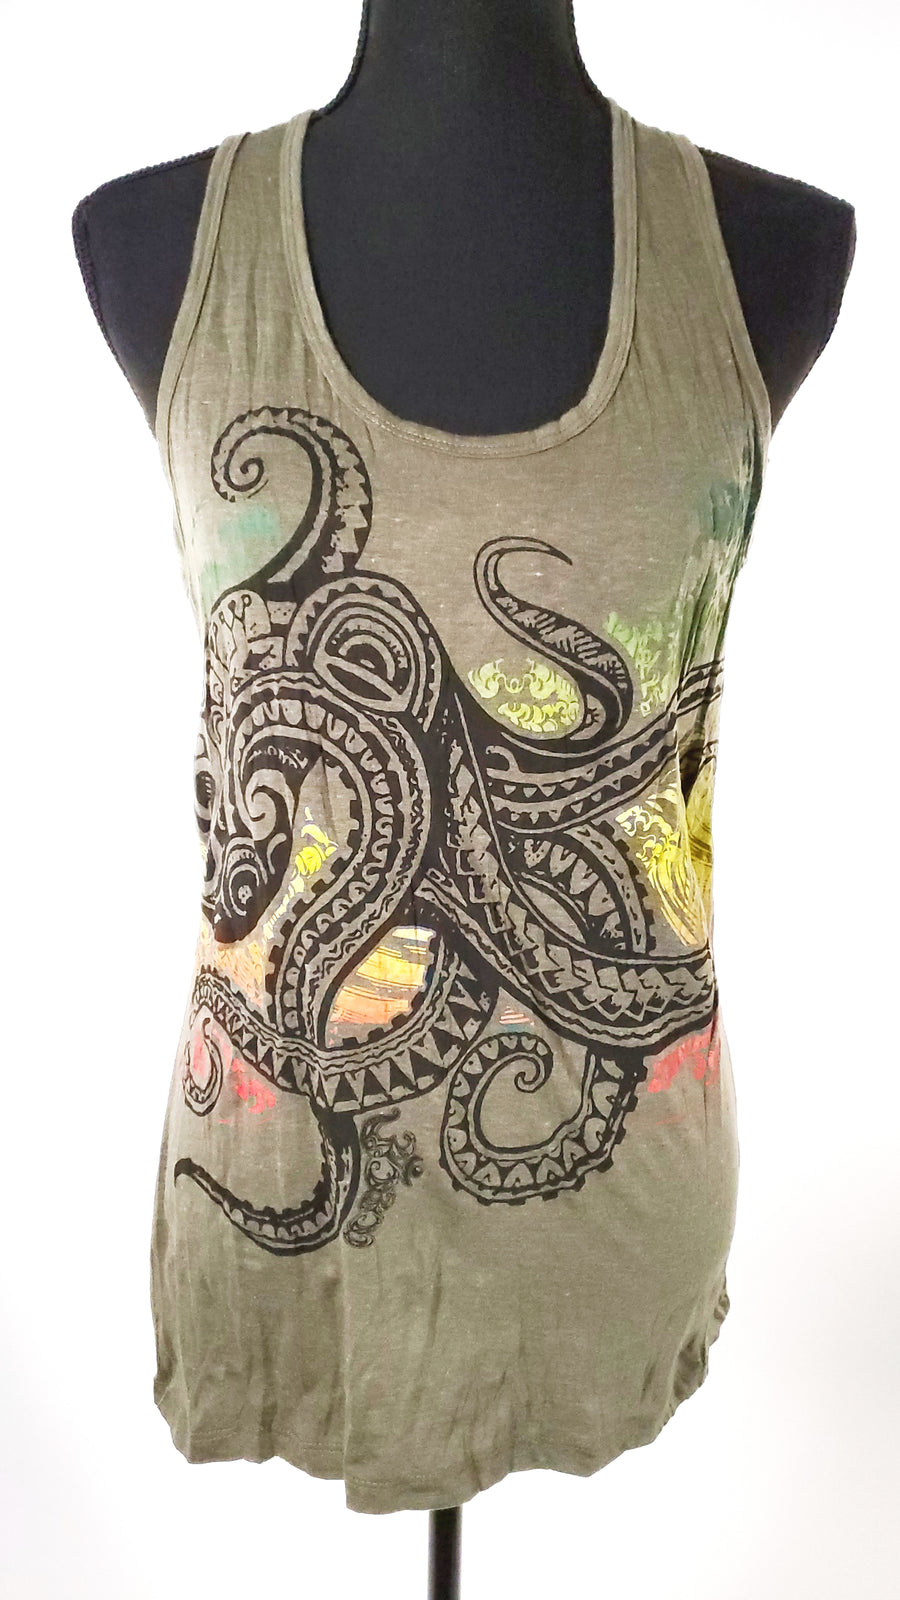 Women's Small Tank Top-The High Thai-The High Thai-Yoga Pants-Harem Pants-Hippie Clothing-San Diego